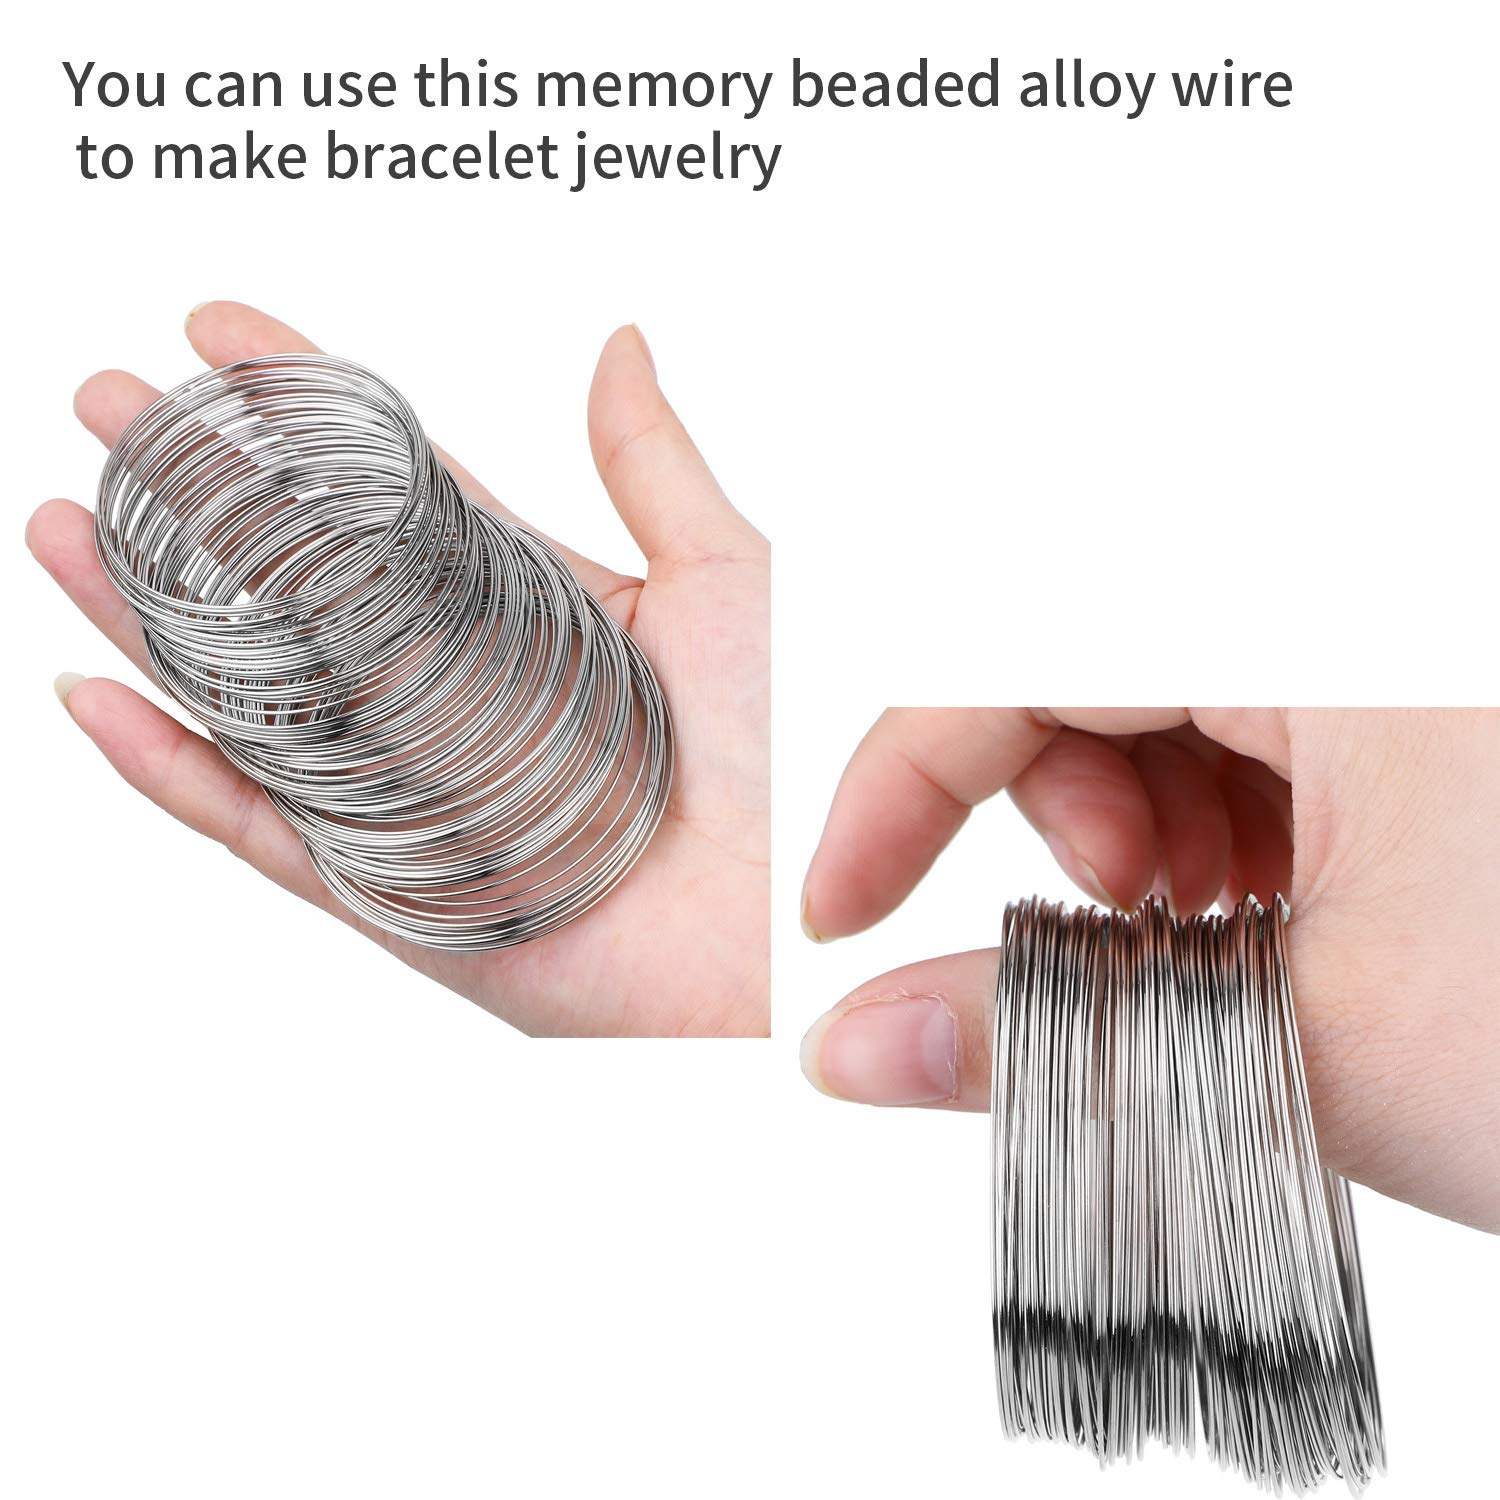 About 400 Pieces Loop Jewelry Wire Beading Wire Bracelet Memory Wire Cuff Bangle for Wire Wrap Jewelry DIY Making Bronze